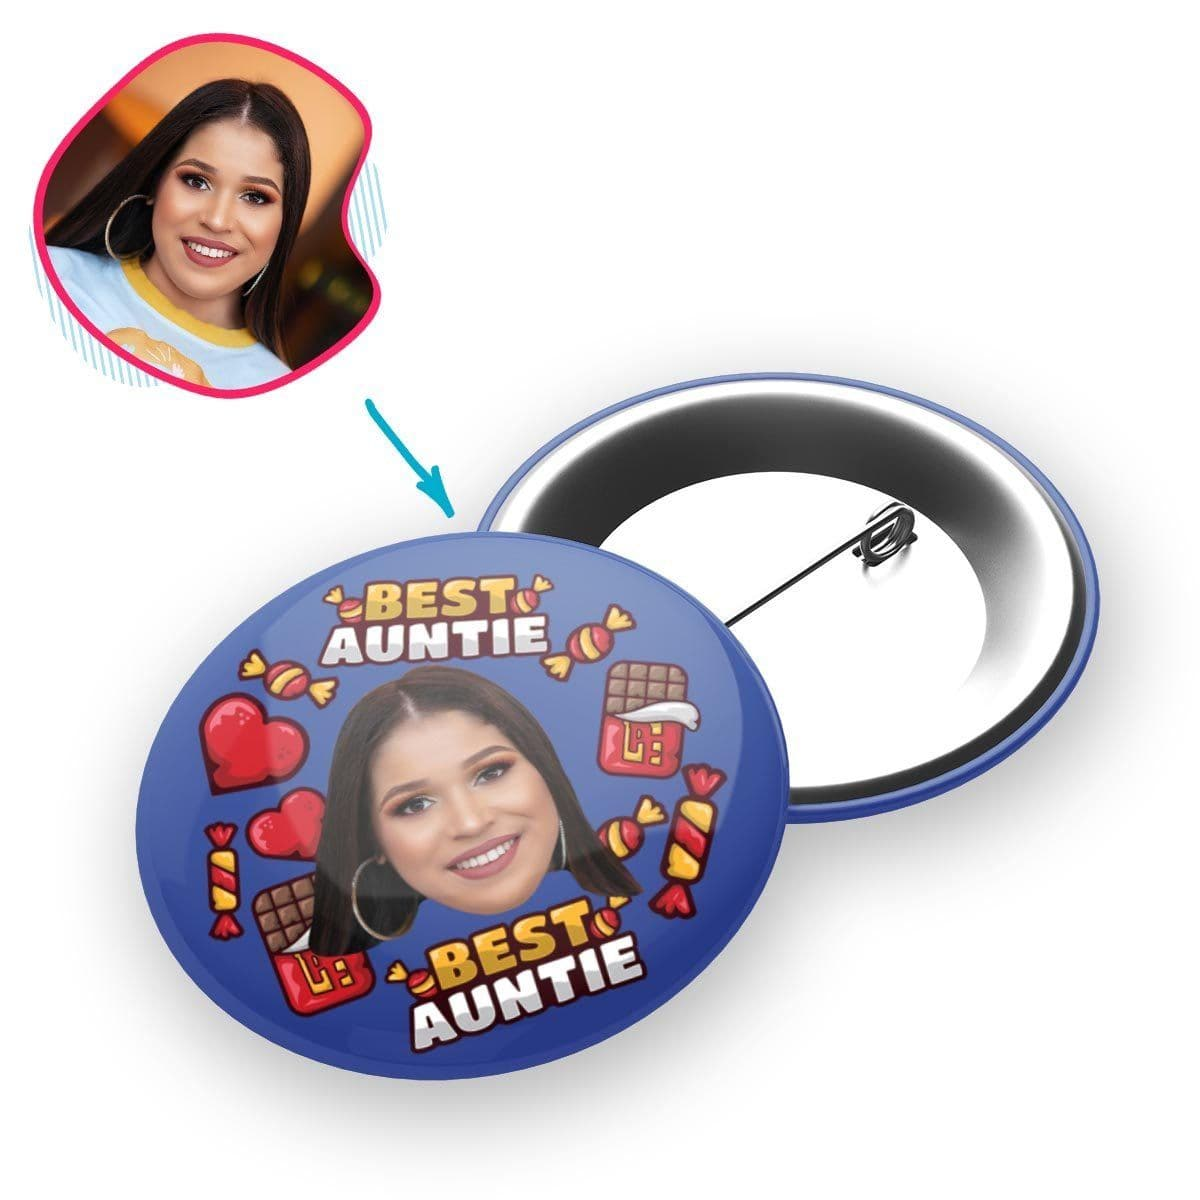 Darkblue Auntie personalized pin with photo of face printed on it